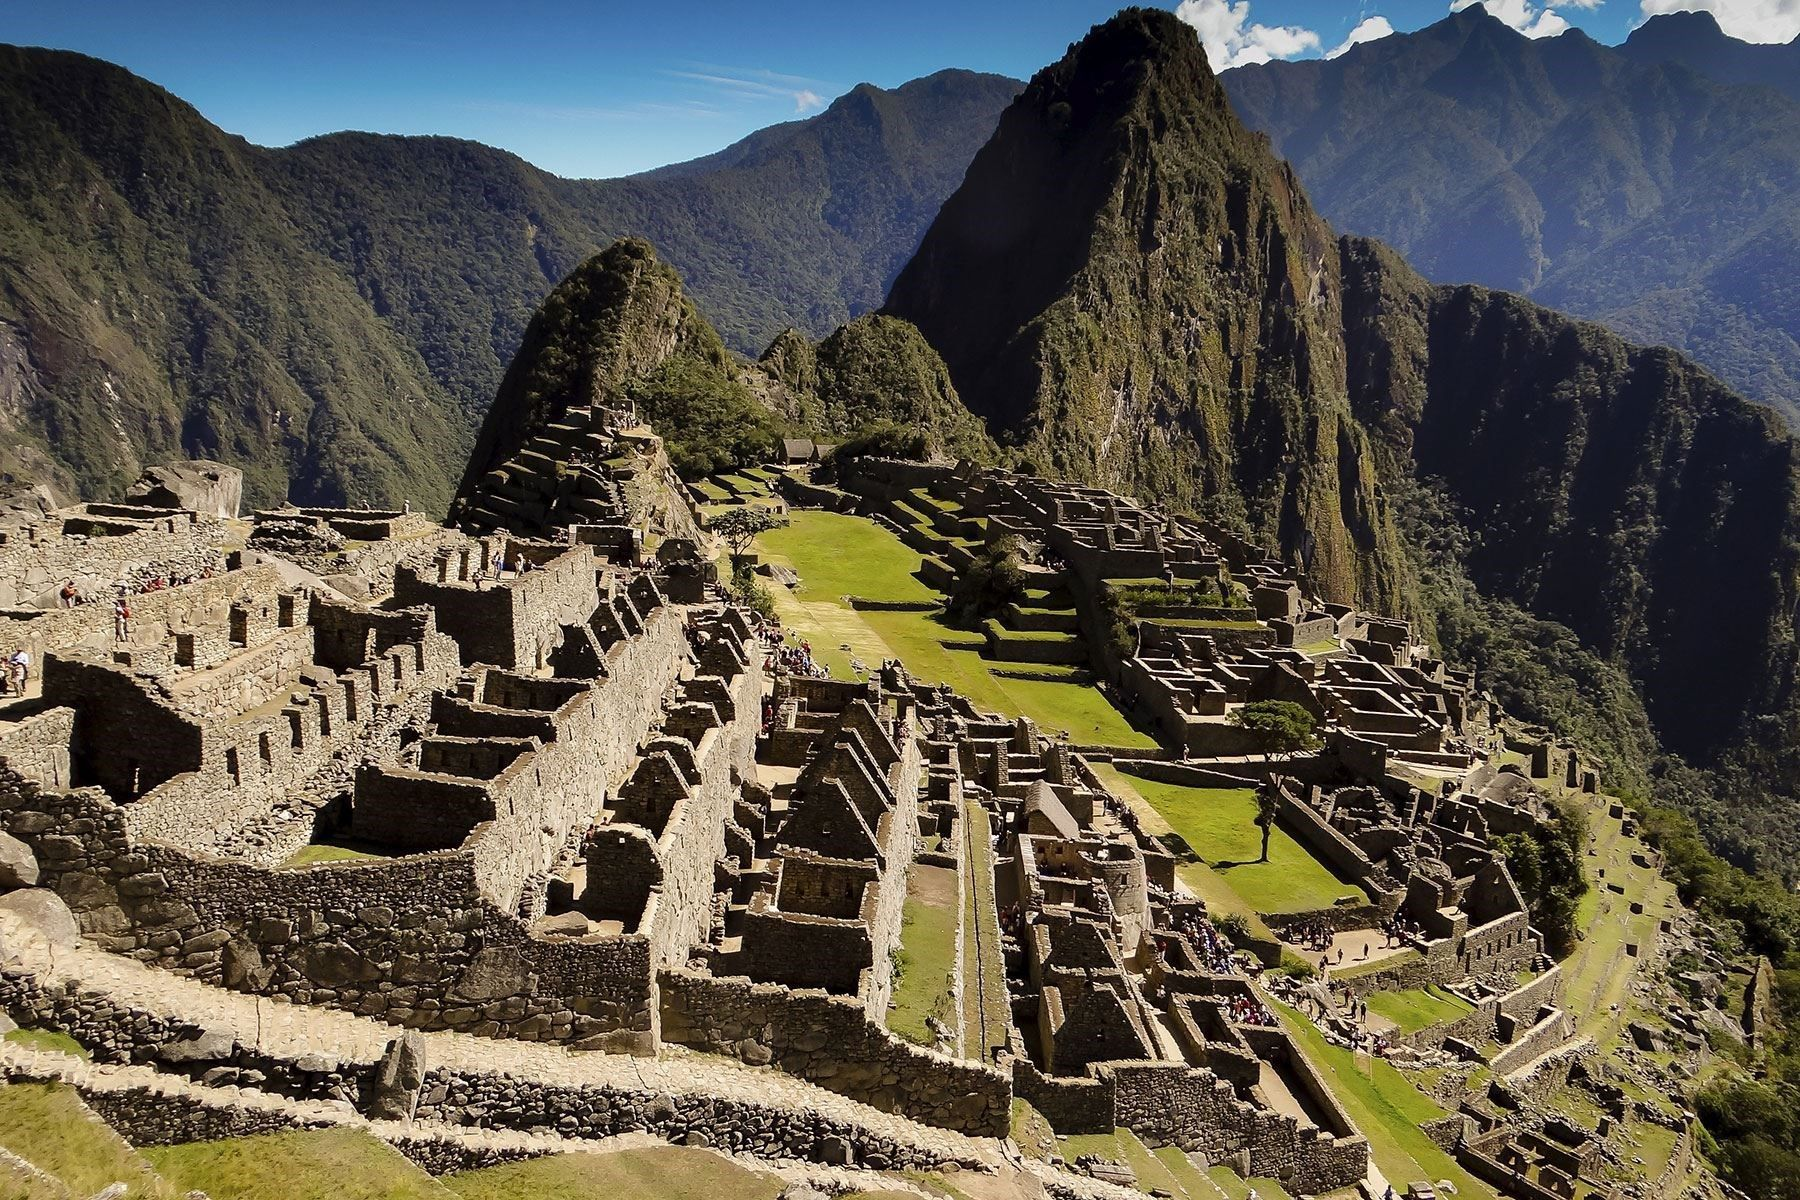 Weird Facts About The Worlds Most Famous LandmarksMachu Picchu - 10 little known cool facts about machu picchu